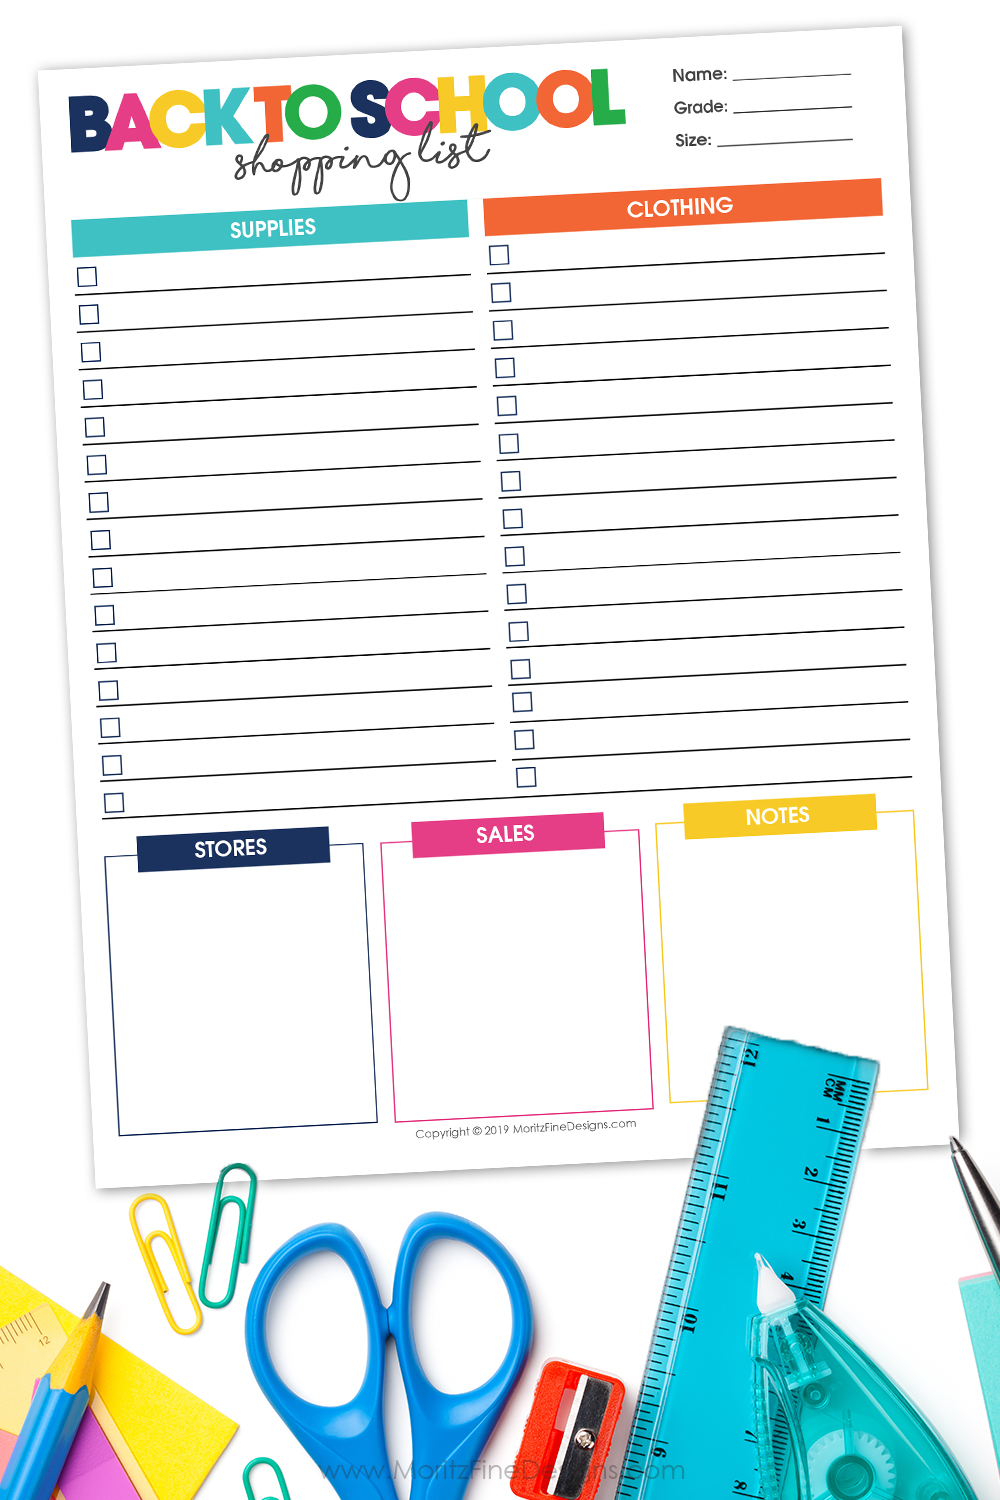 Get the most out of your back to school shopping, use the free printable Back to School Shopping List to creat a complete list of everything your kids need.